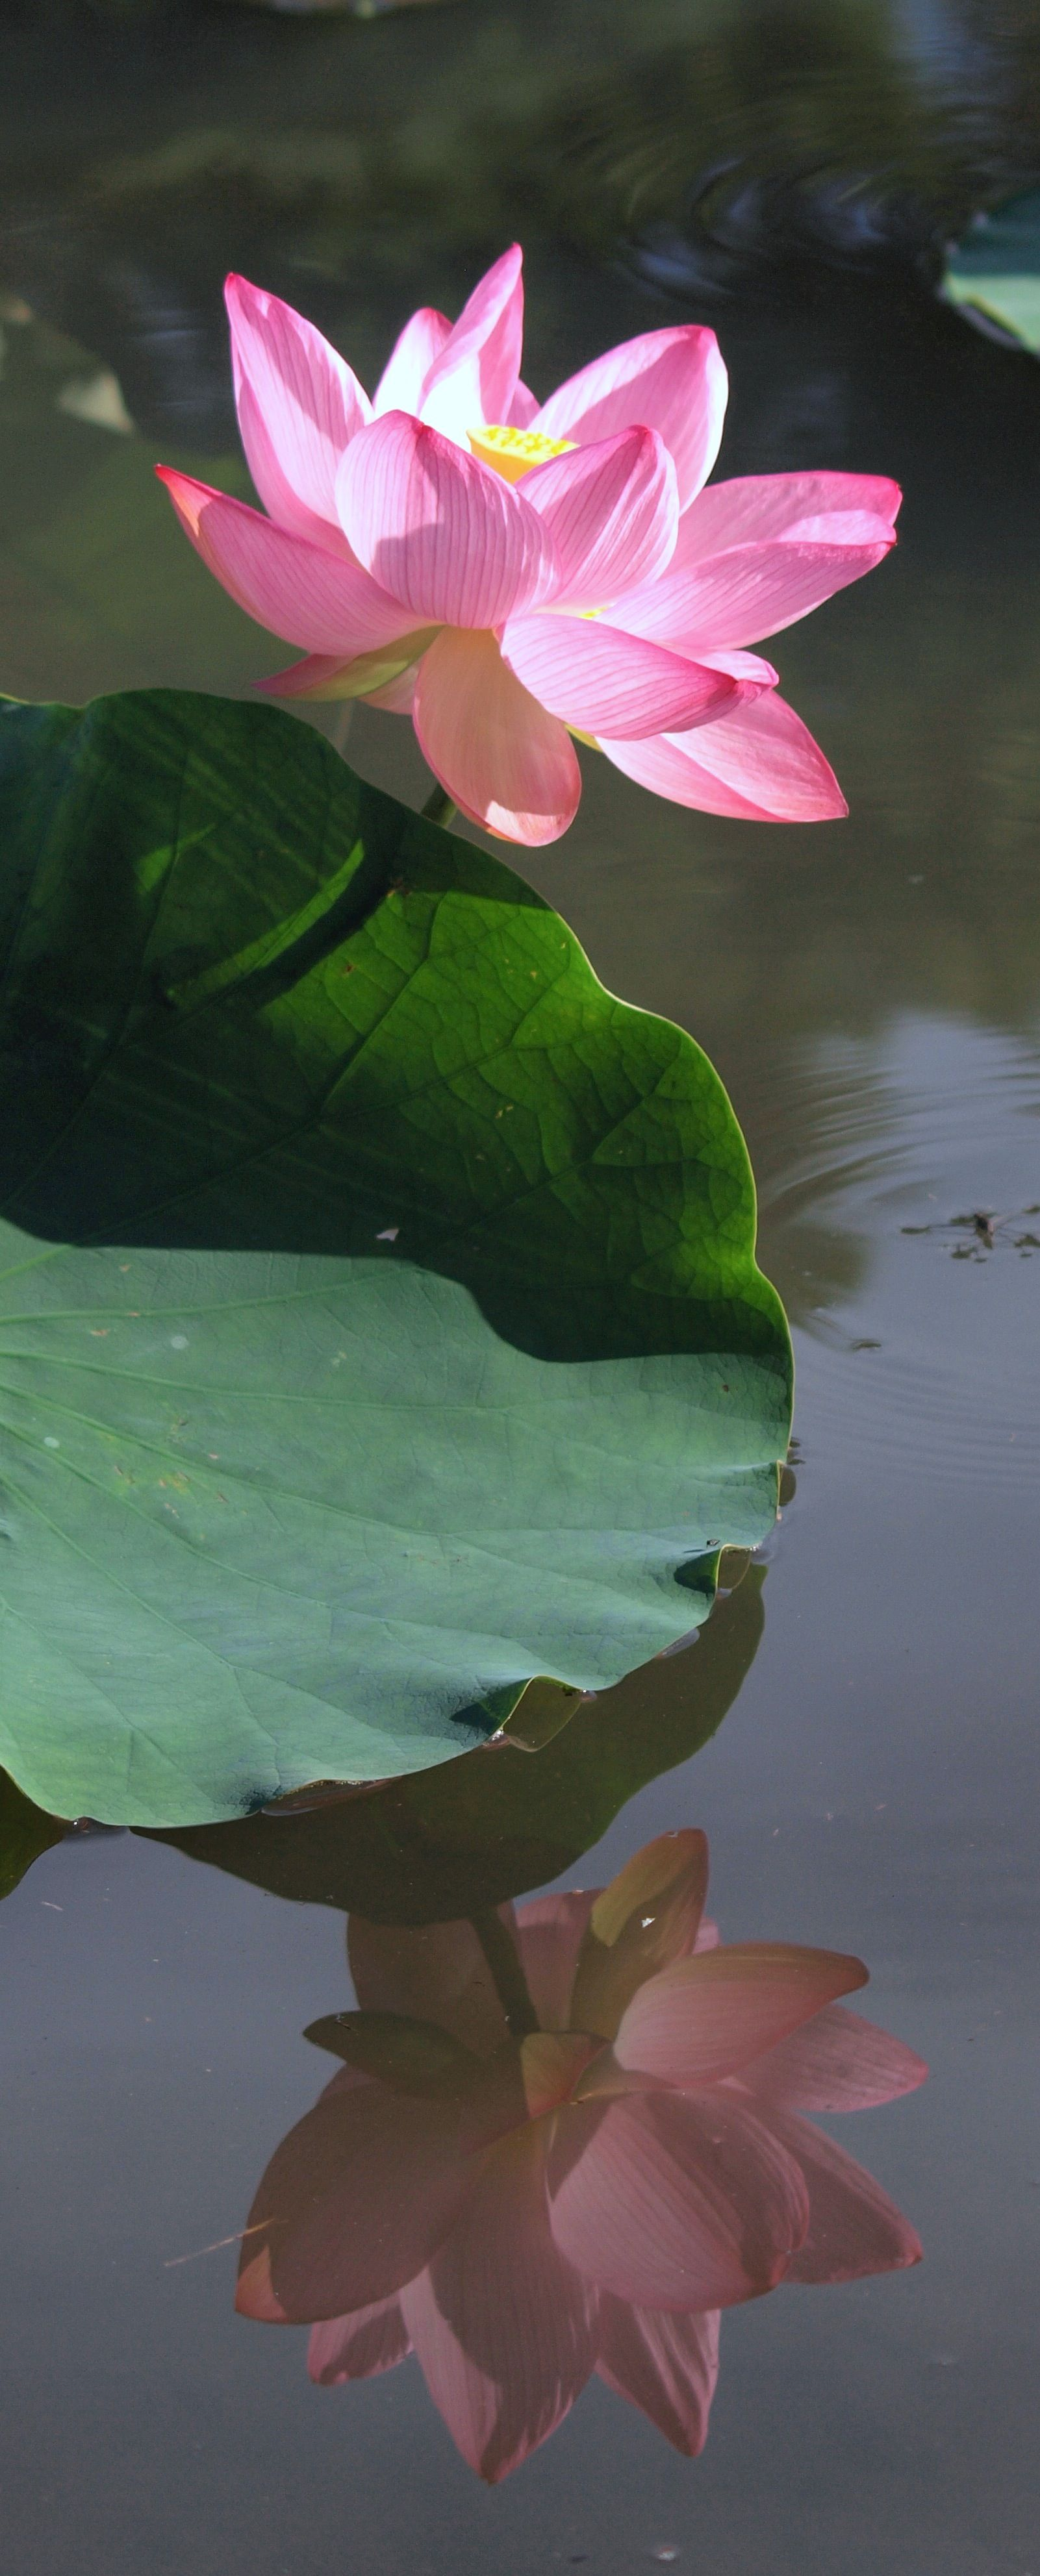 pink lotus and leaf with reflection  #lotus #flower